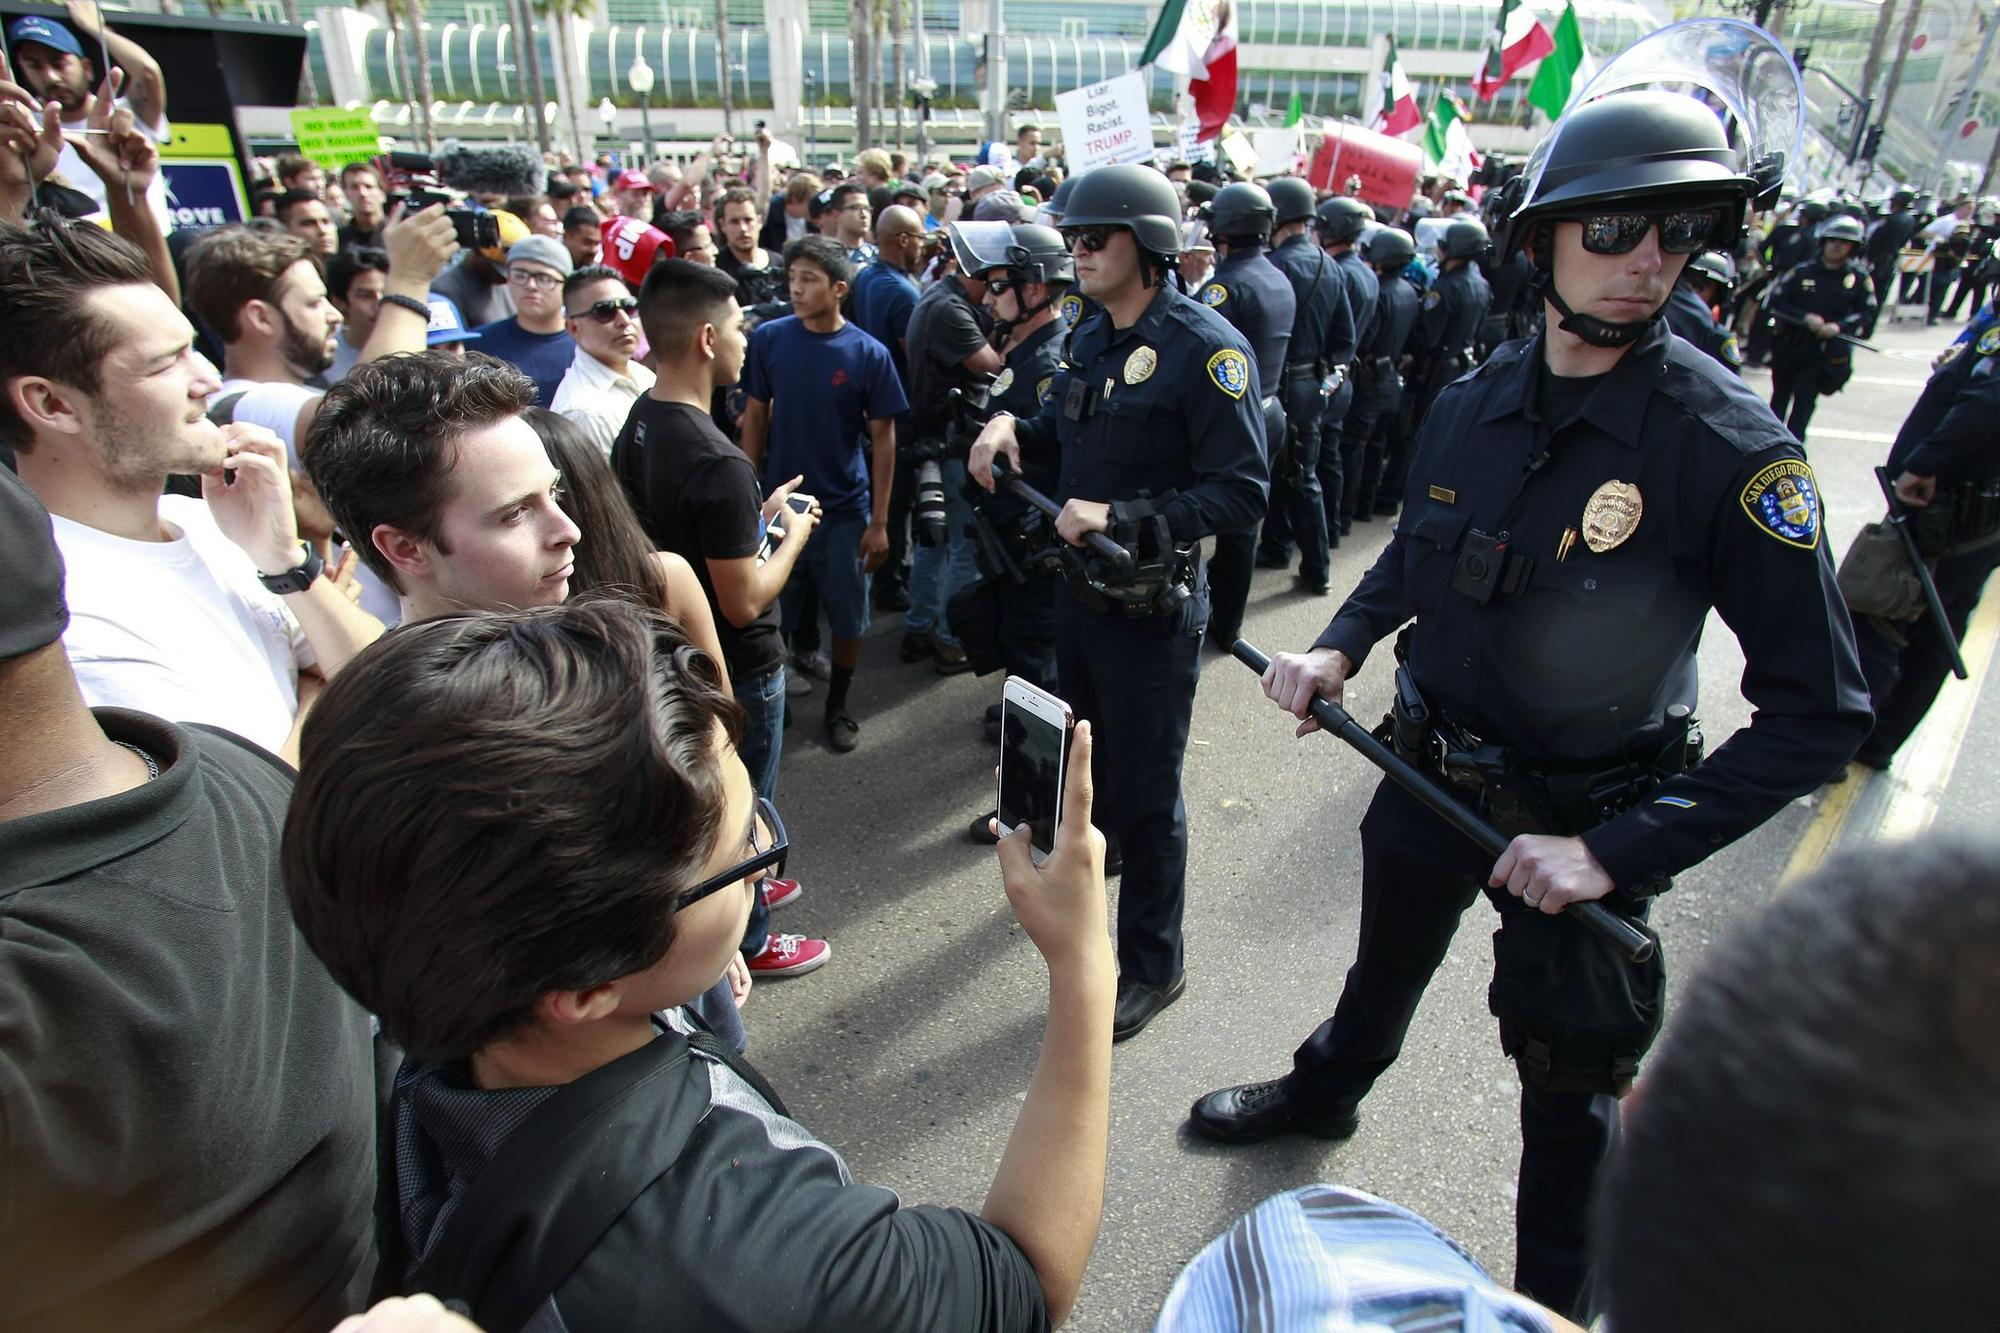 San Diego police officers get force full as they push protestors back during a protest in the Gaslamp Quarter.